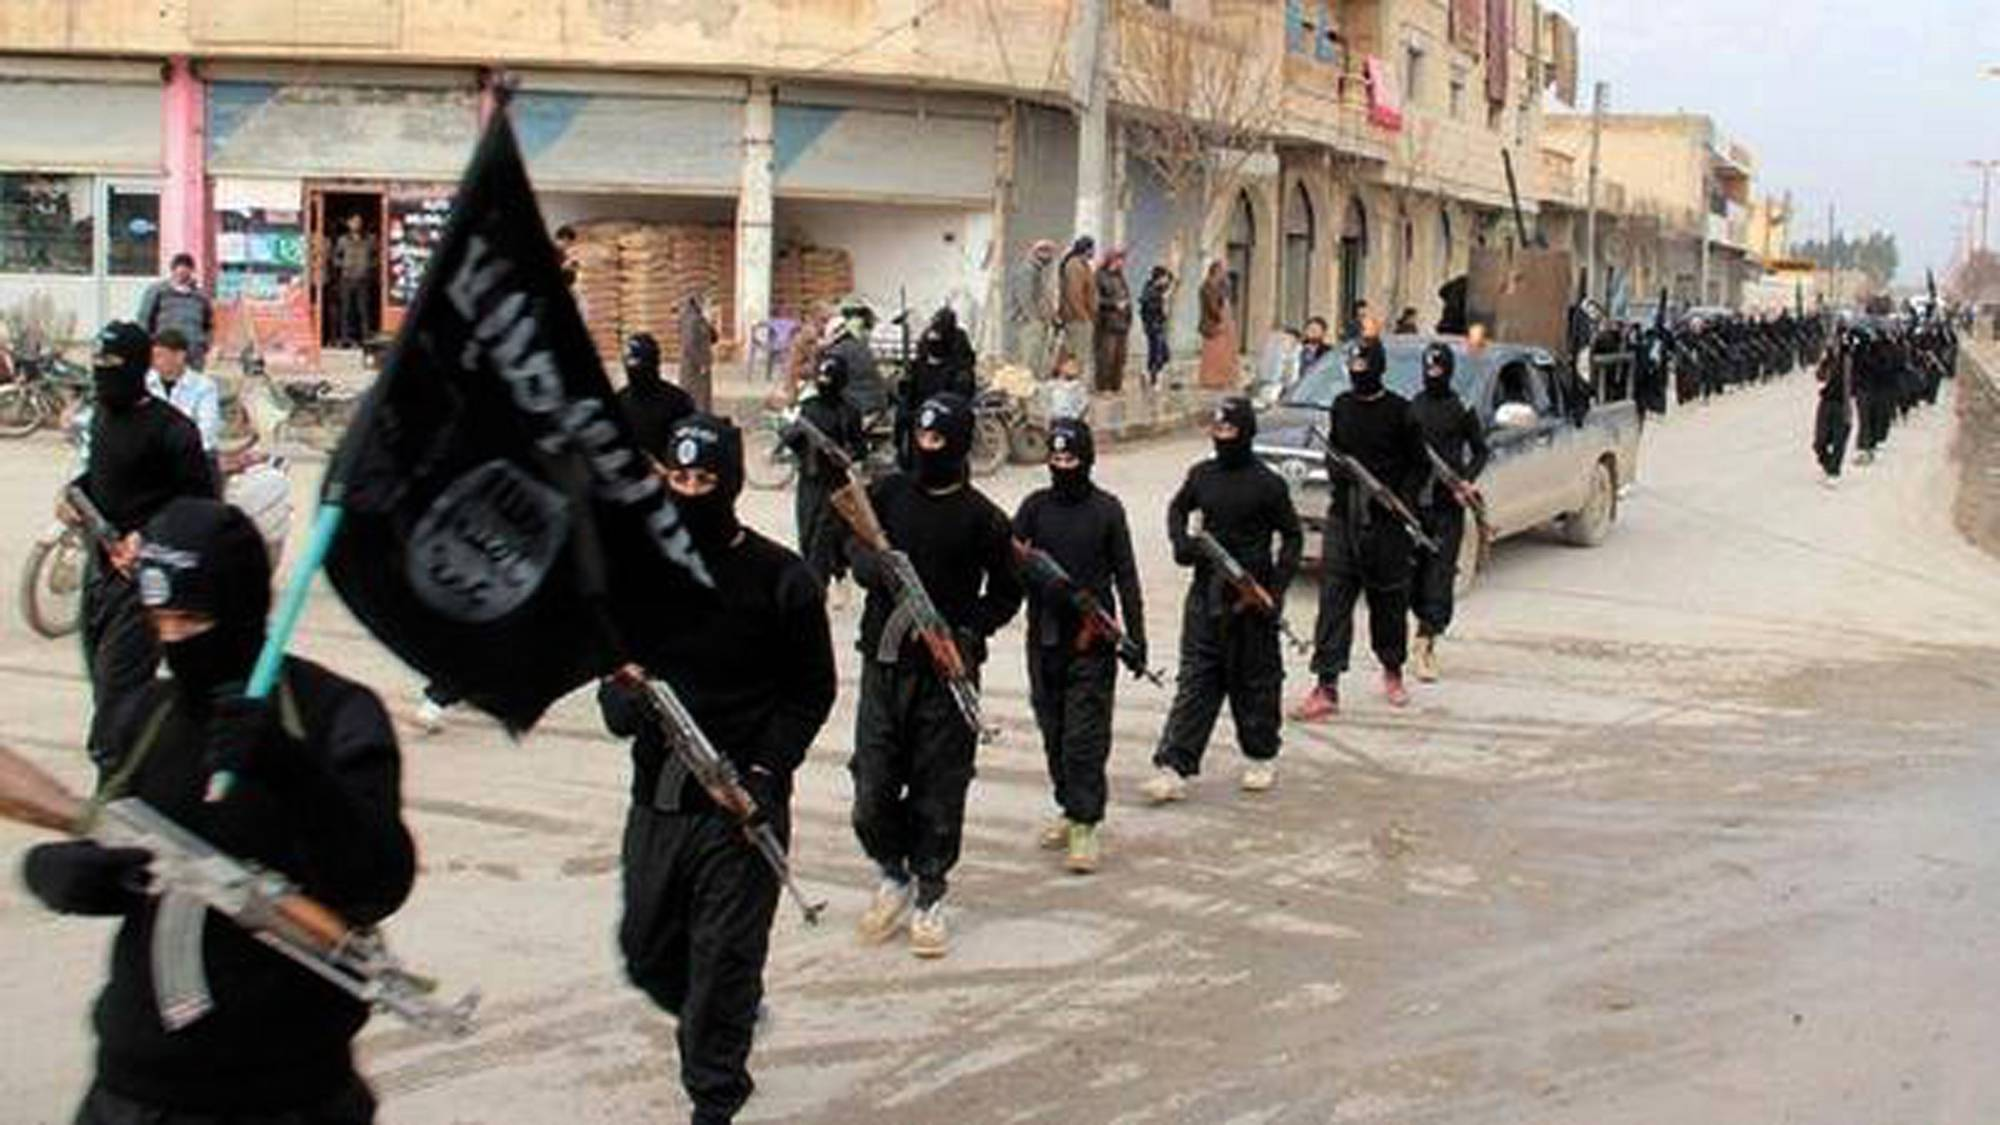 Fighters from the al-Qaida linked Islamic State of Iraq and the Levant (ISIL) march in Raqqa, Syria.